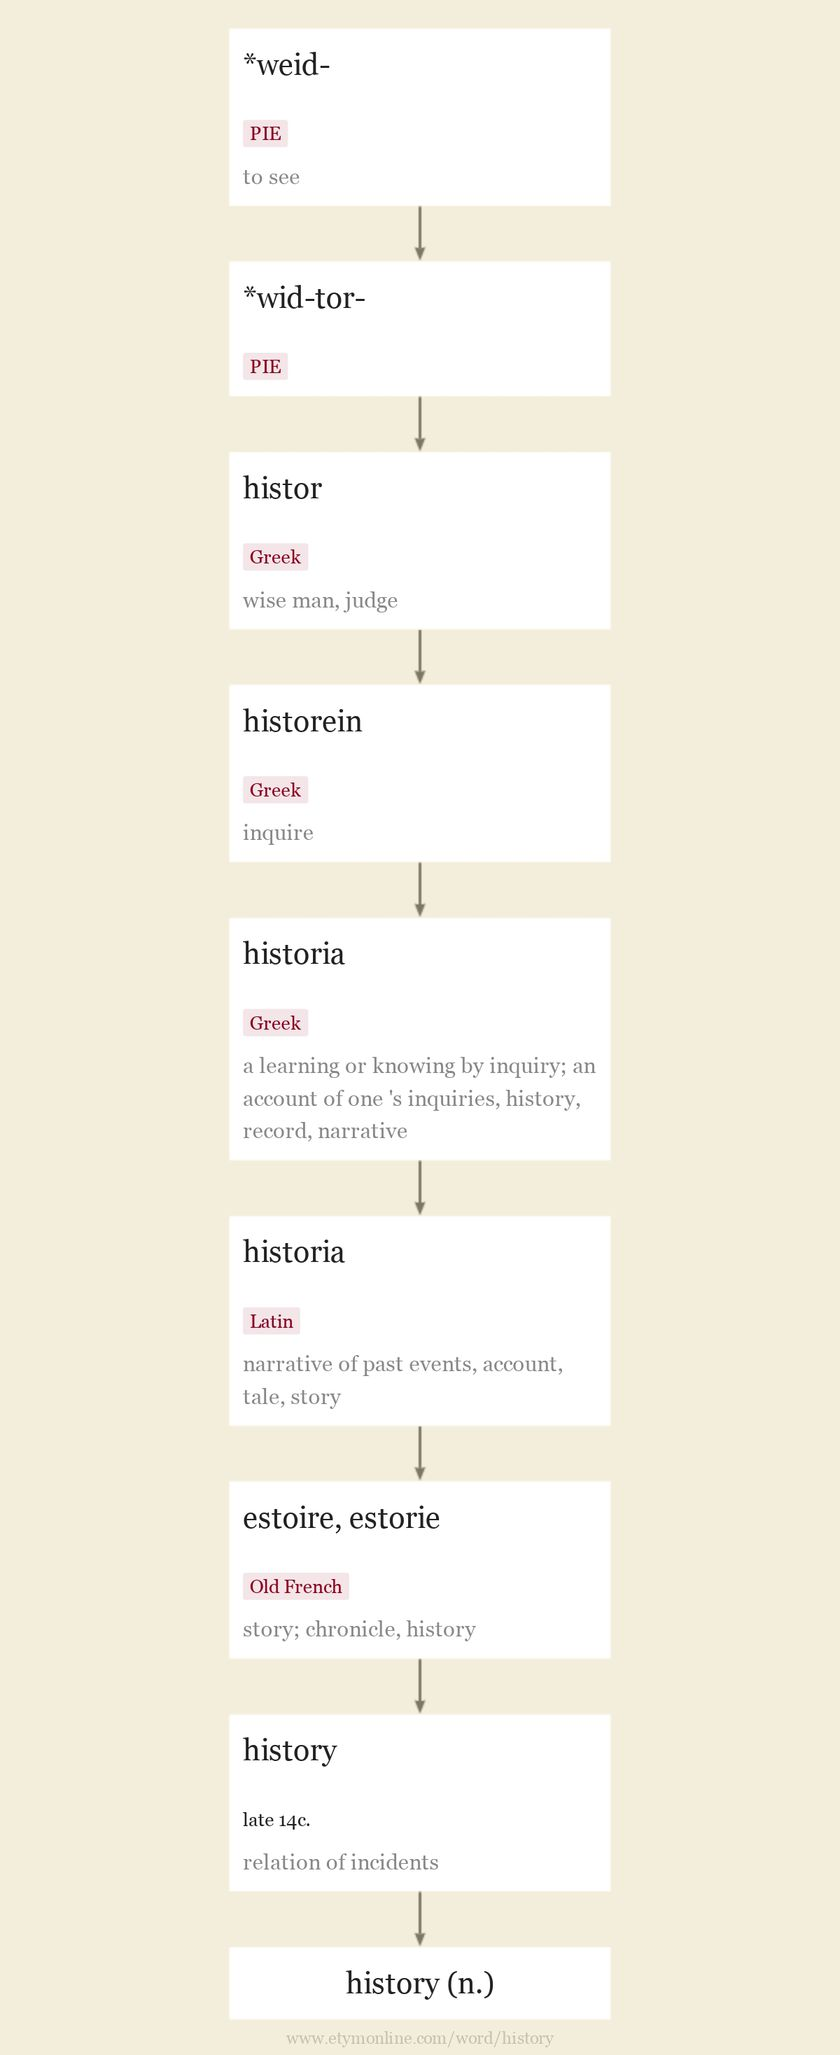 Origin and meaning of history